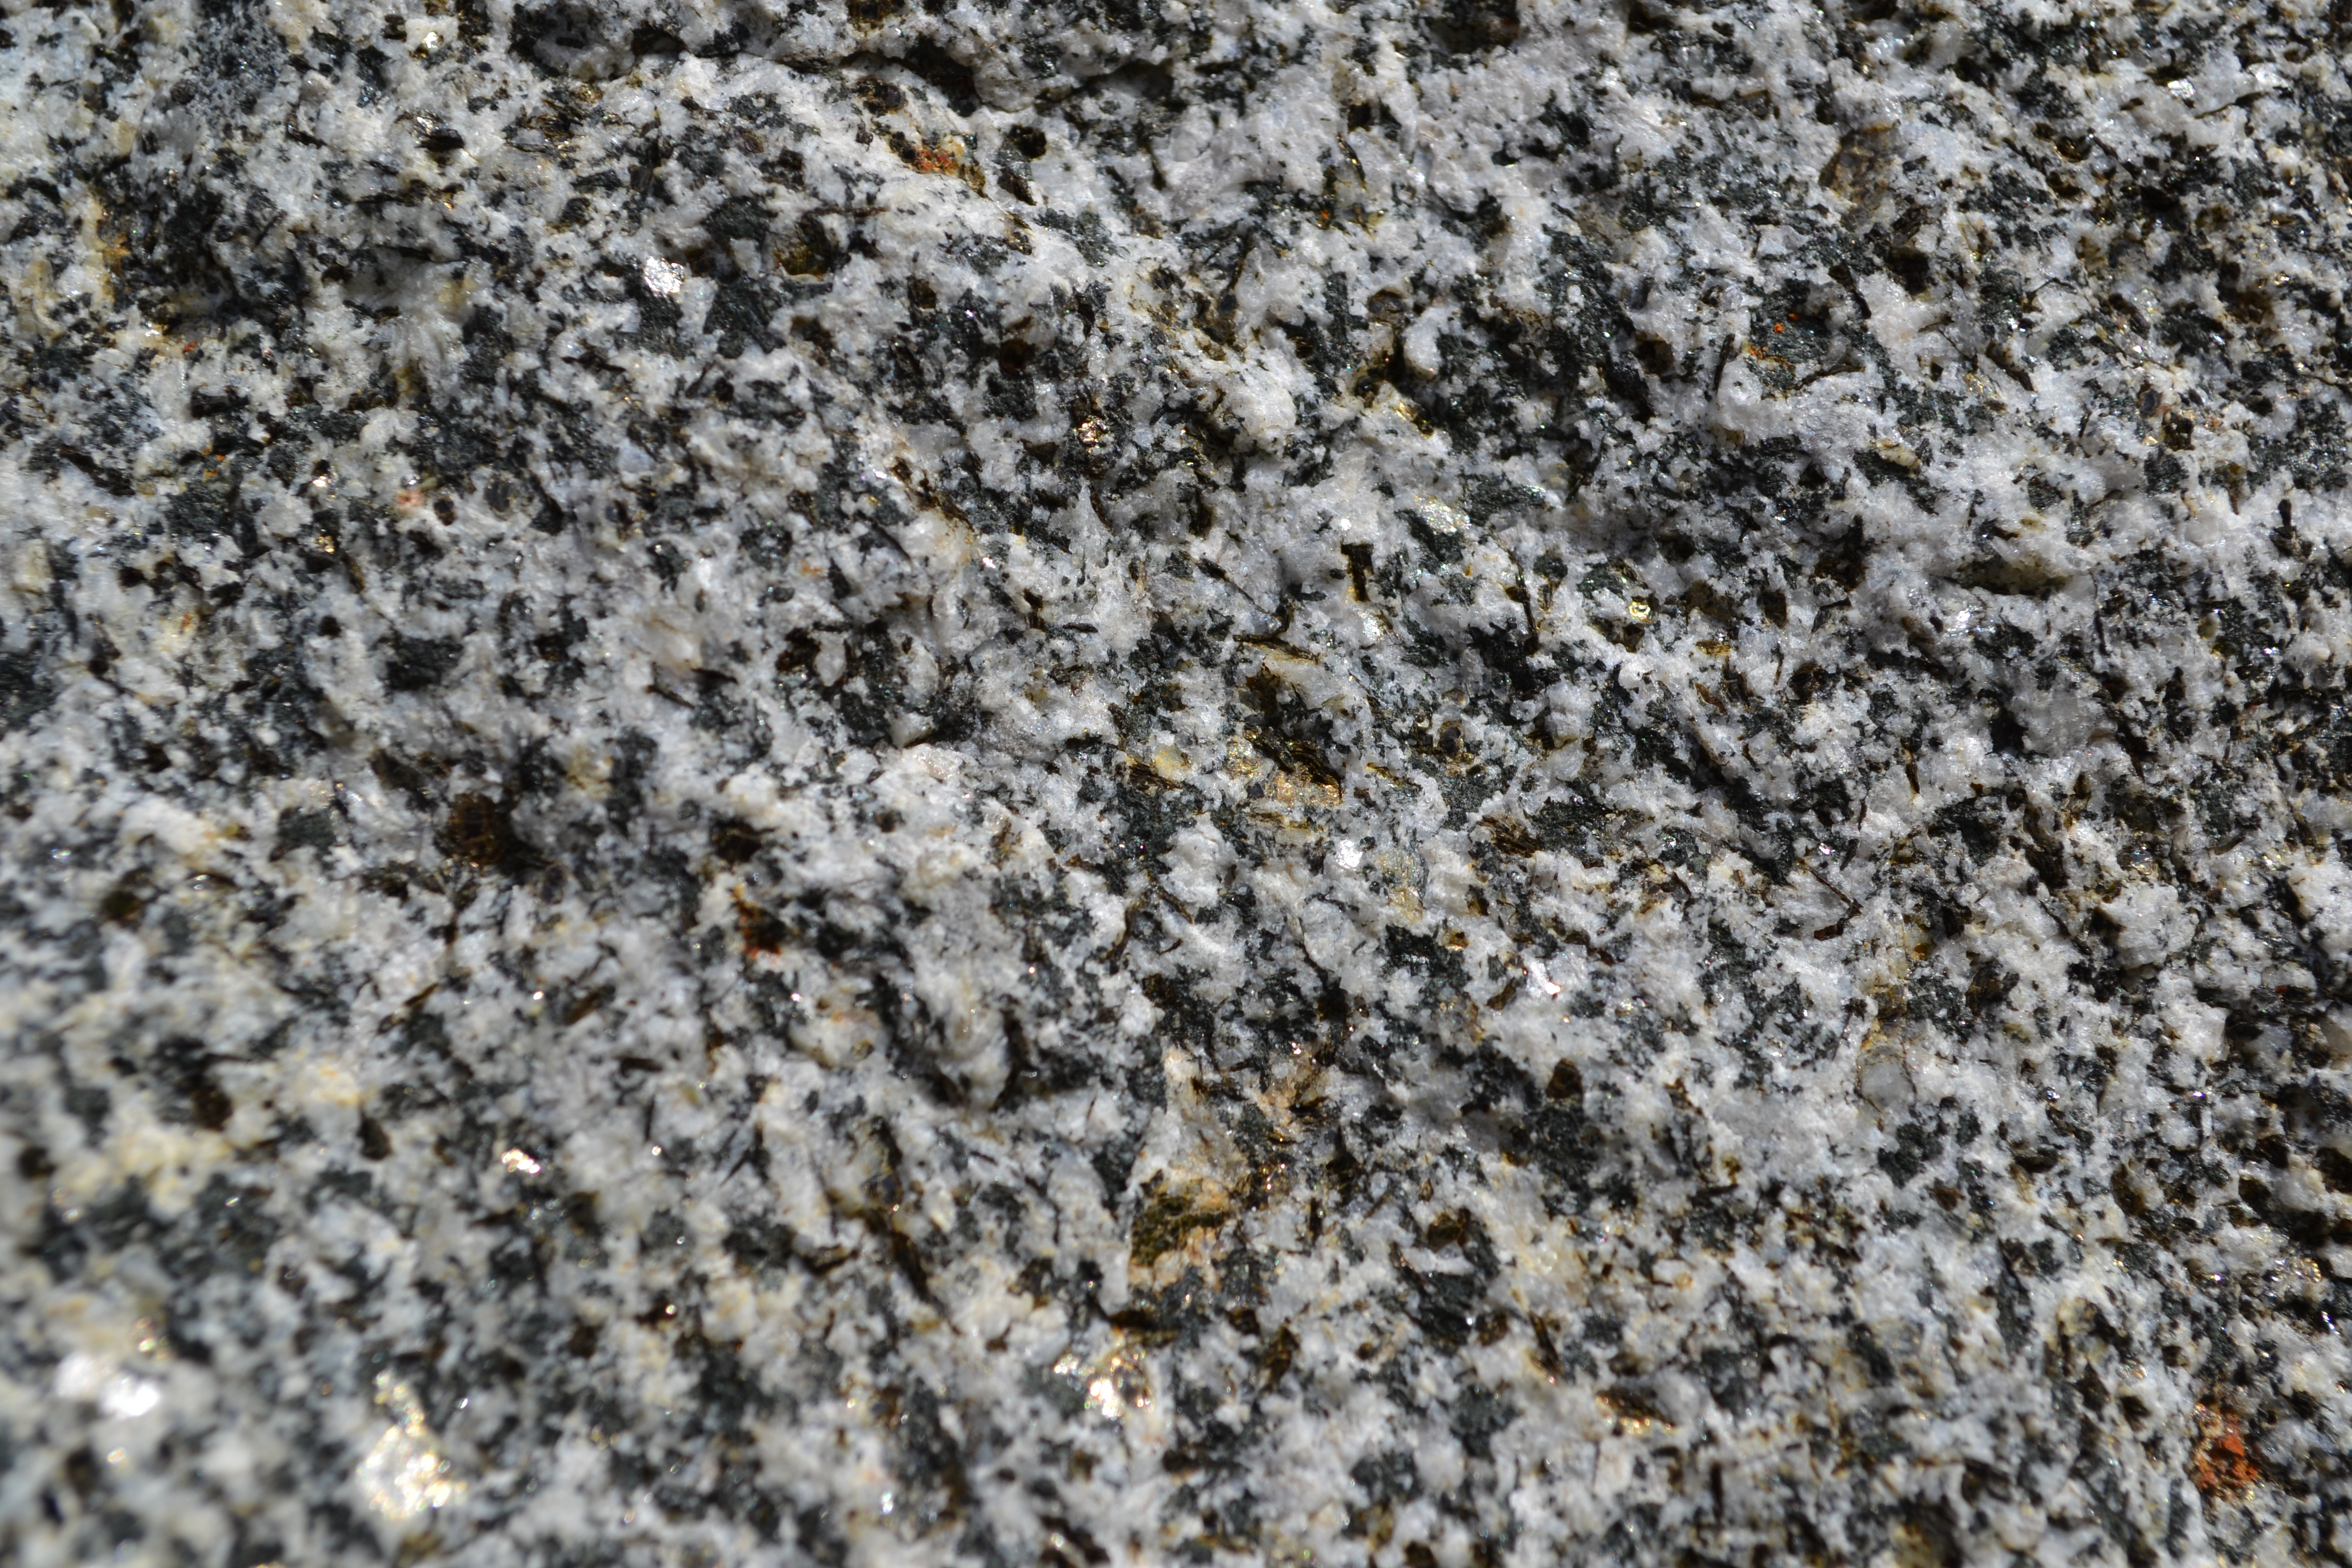 File:Granite sample.JPG - Wikimedia Commons